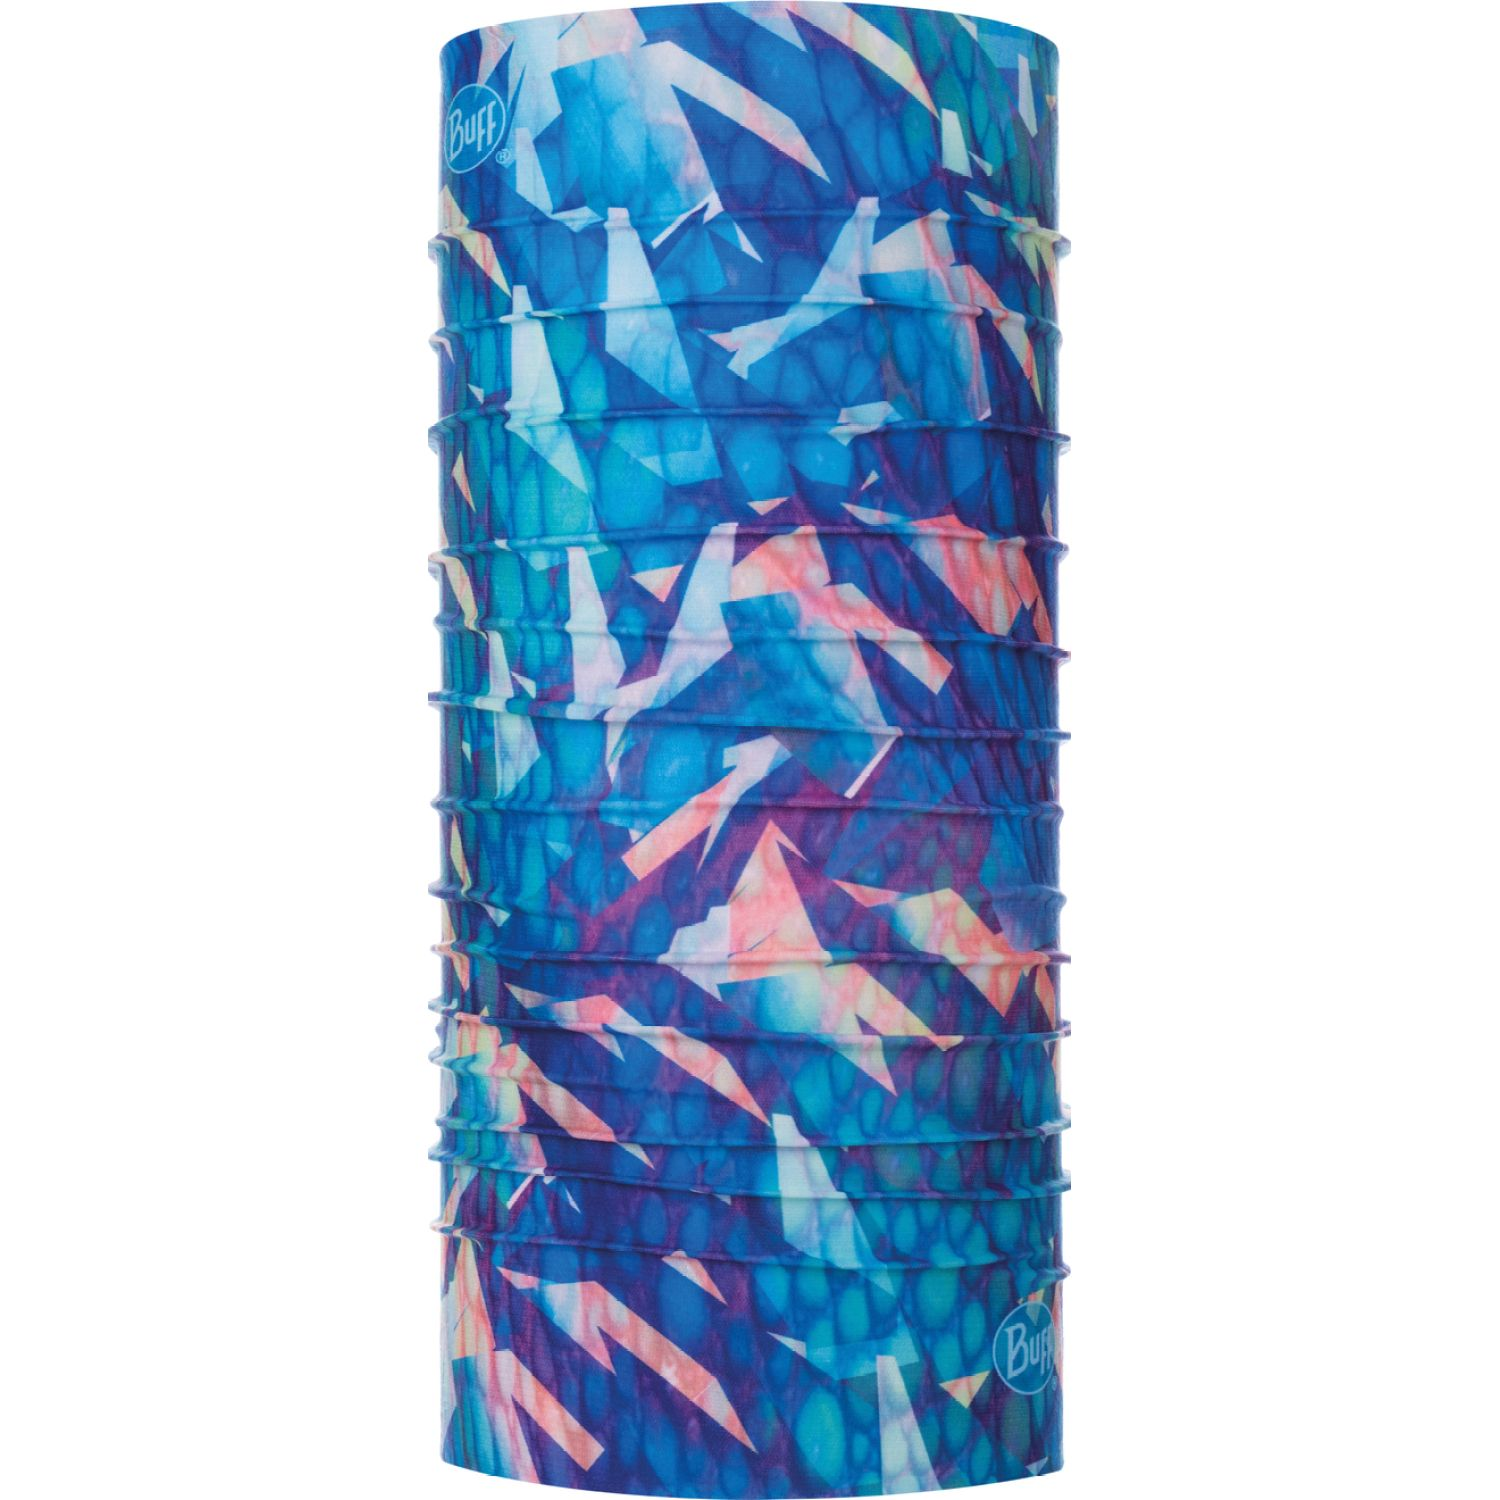 BUFF coolnet uv+ refraction Celeste Gaiters de Cuello o Calienta Cuellos